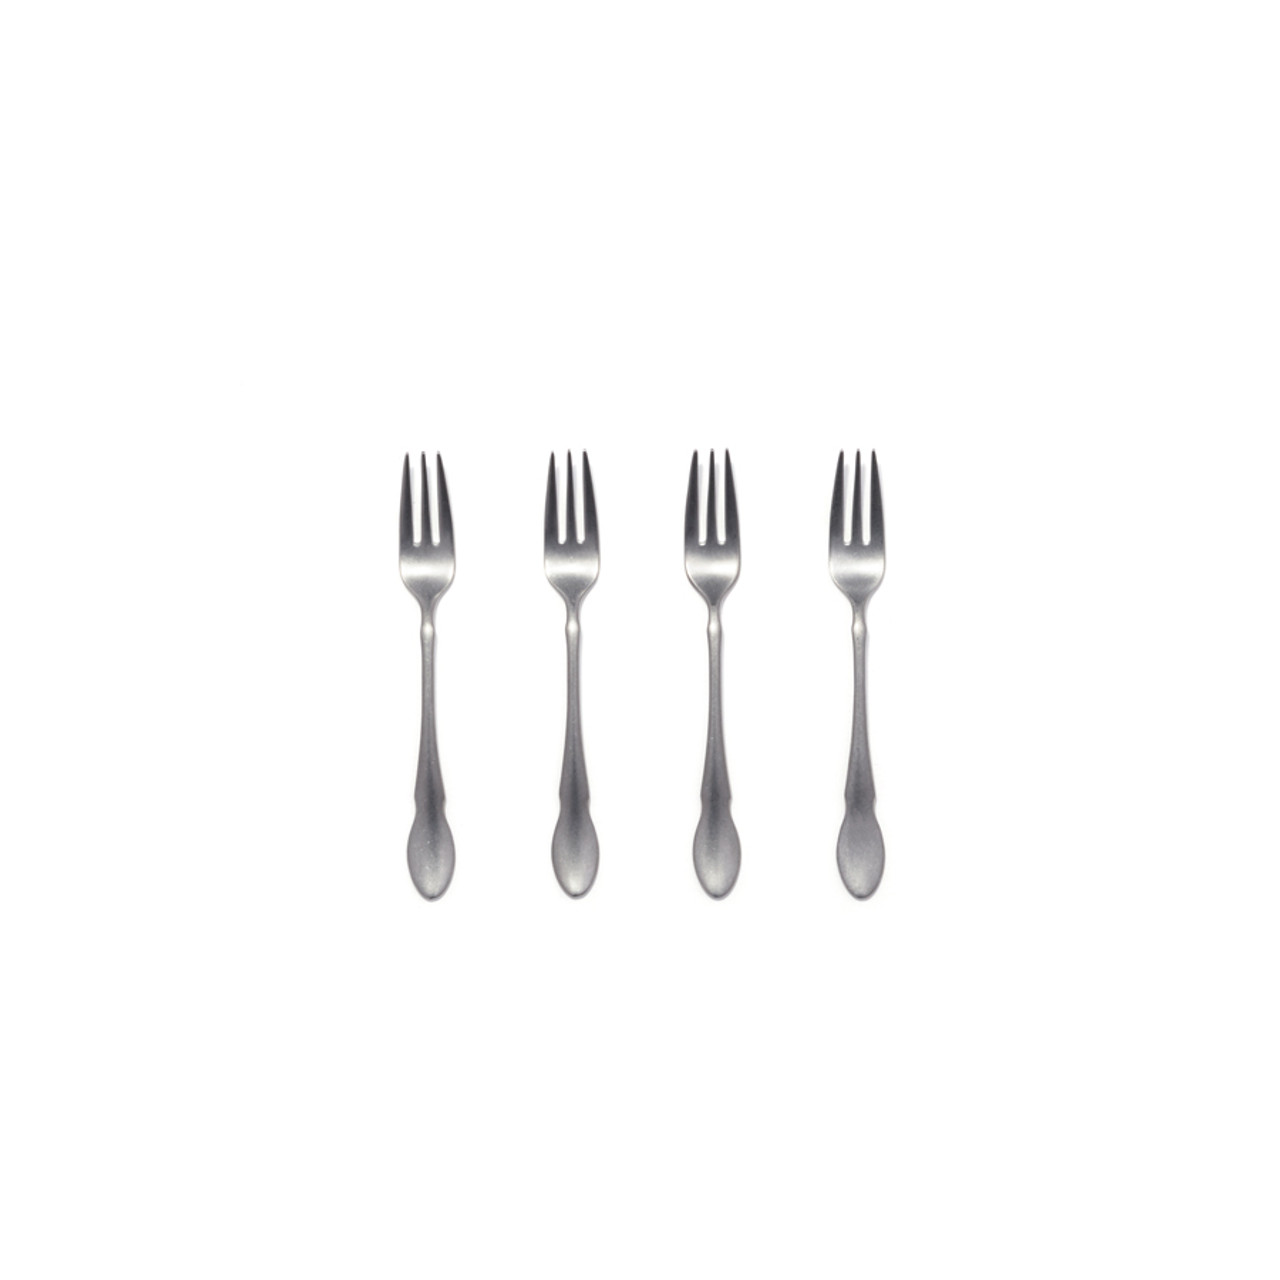 Ash - 4 piece cocktail fork set